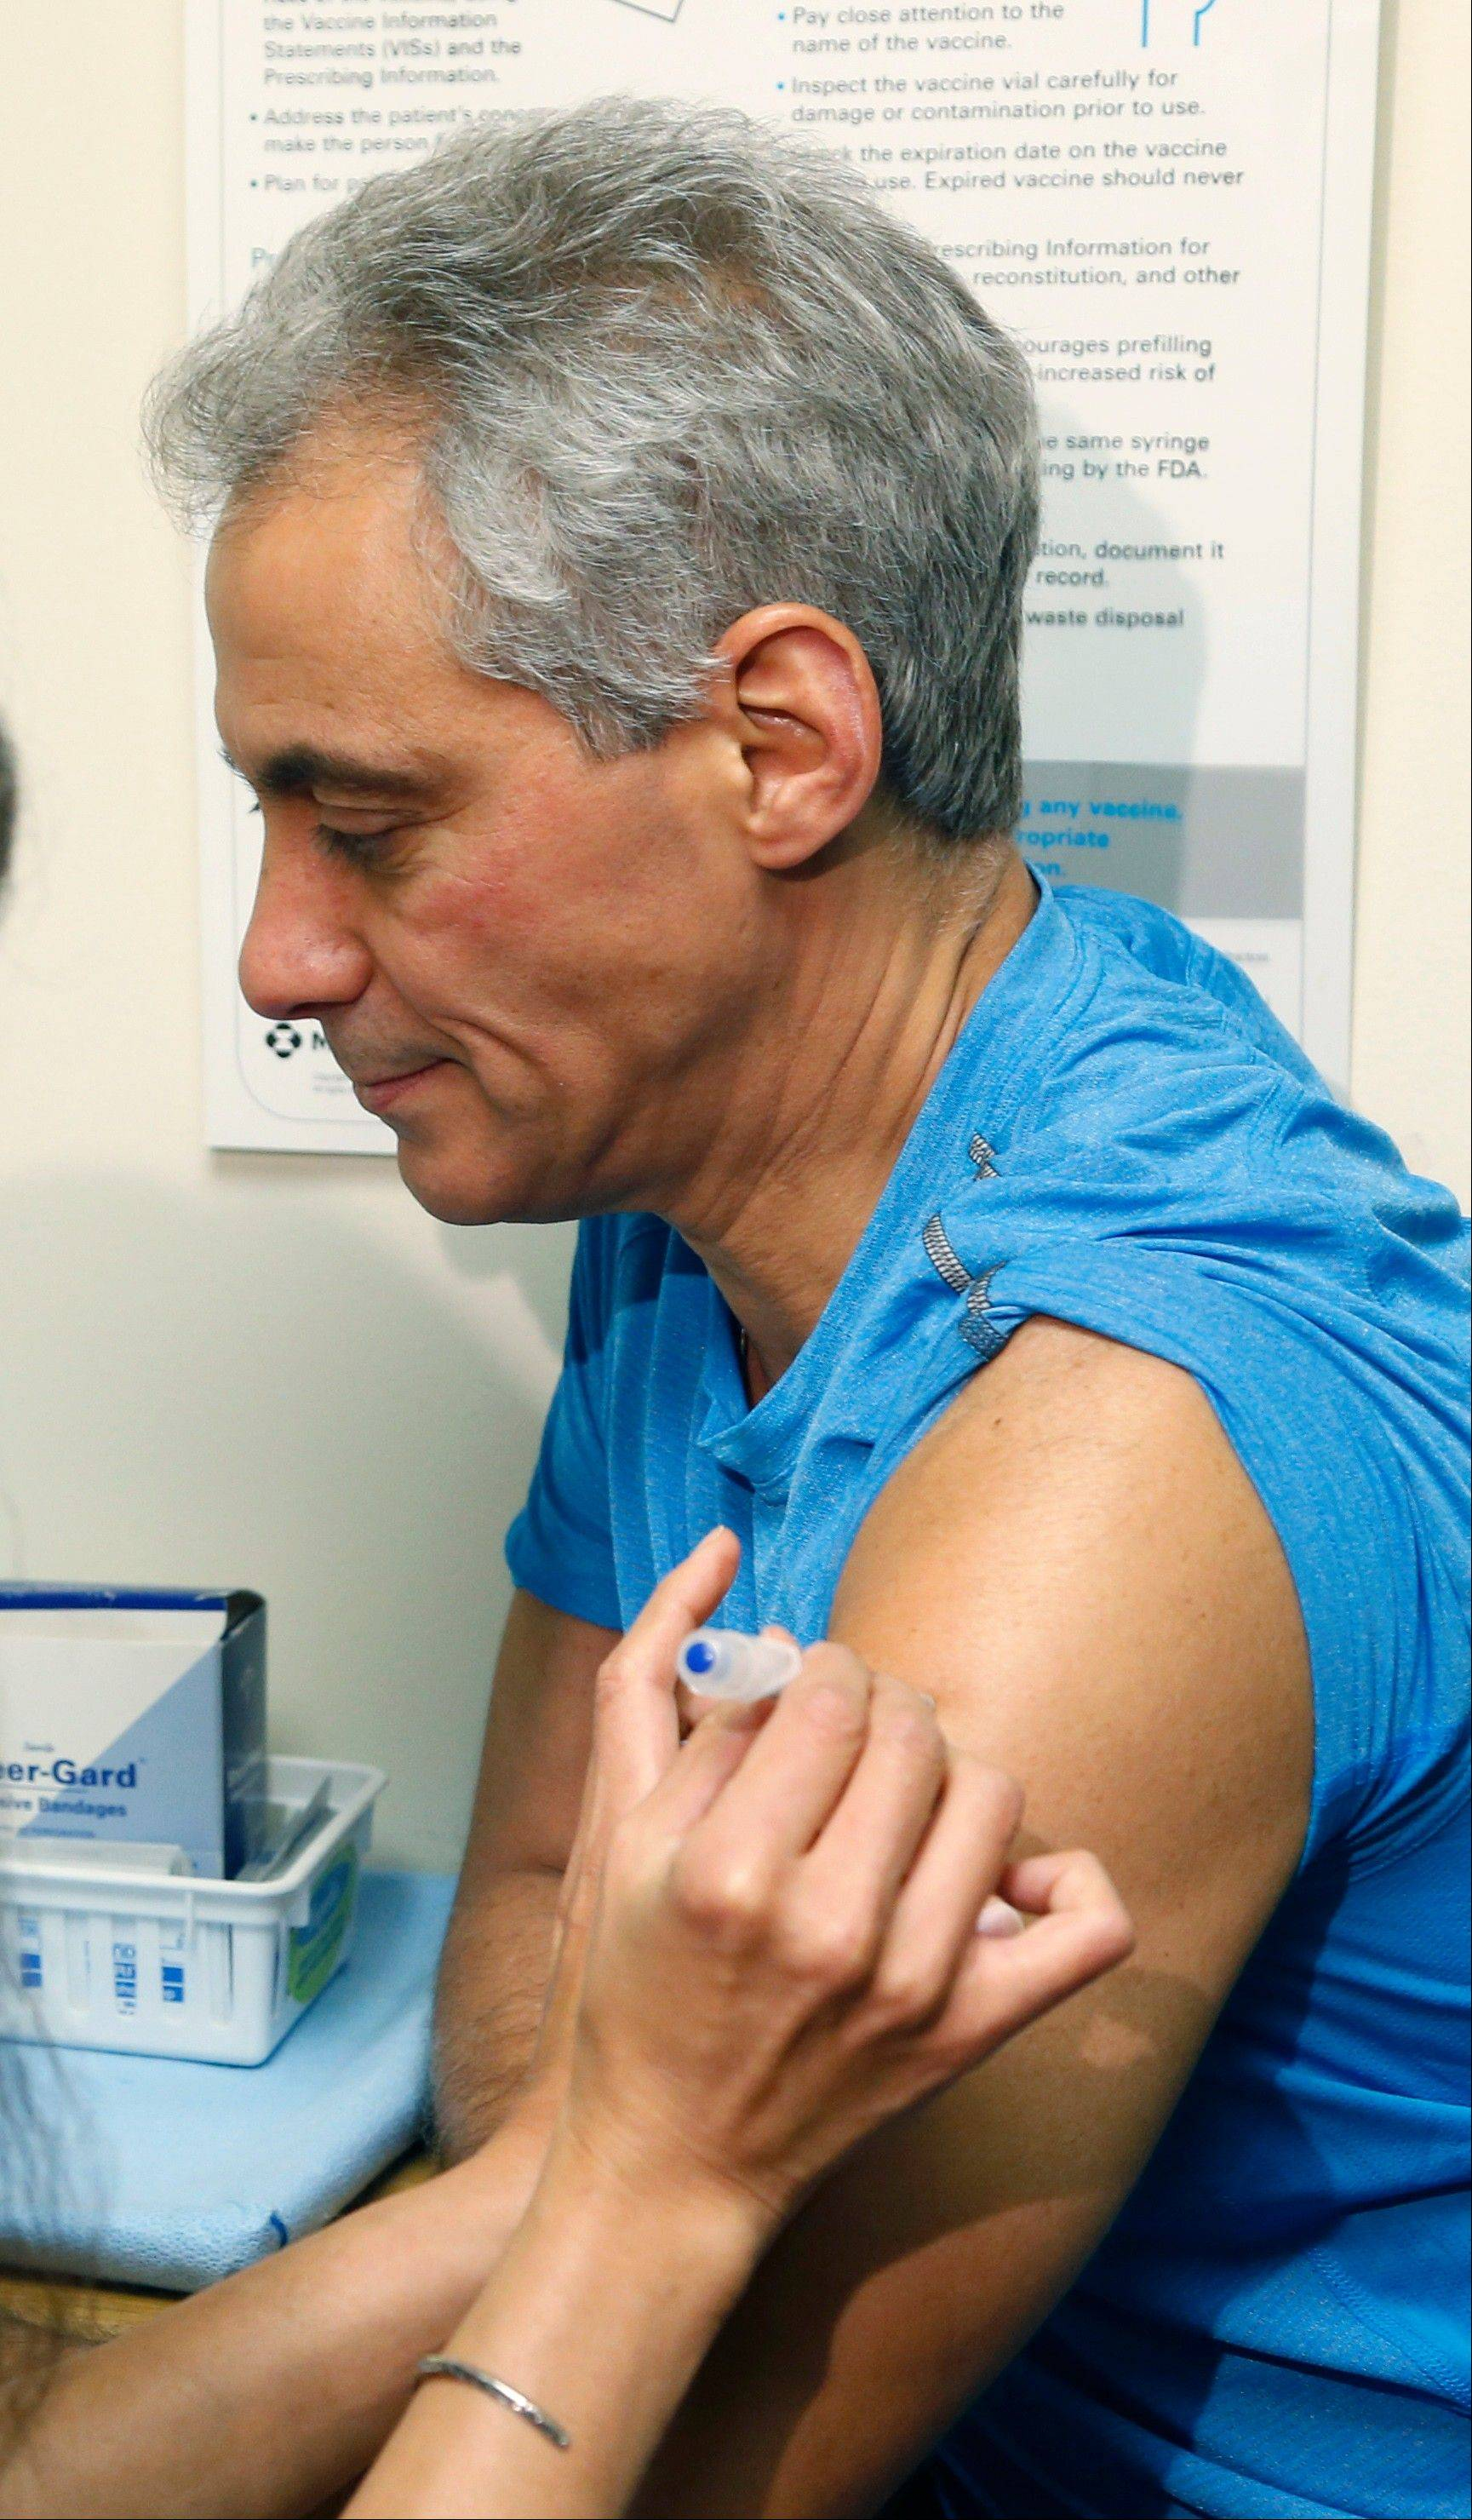 Chicago Mayor Rahm Emanuel receives a flu shot Friday from Dr. Julie Morita, director of immunizations for the Chicago Department of Public Health, at a North Side clinic.